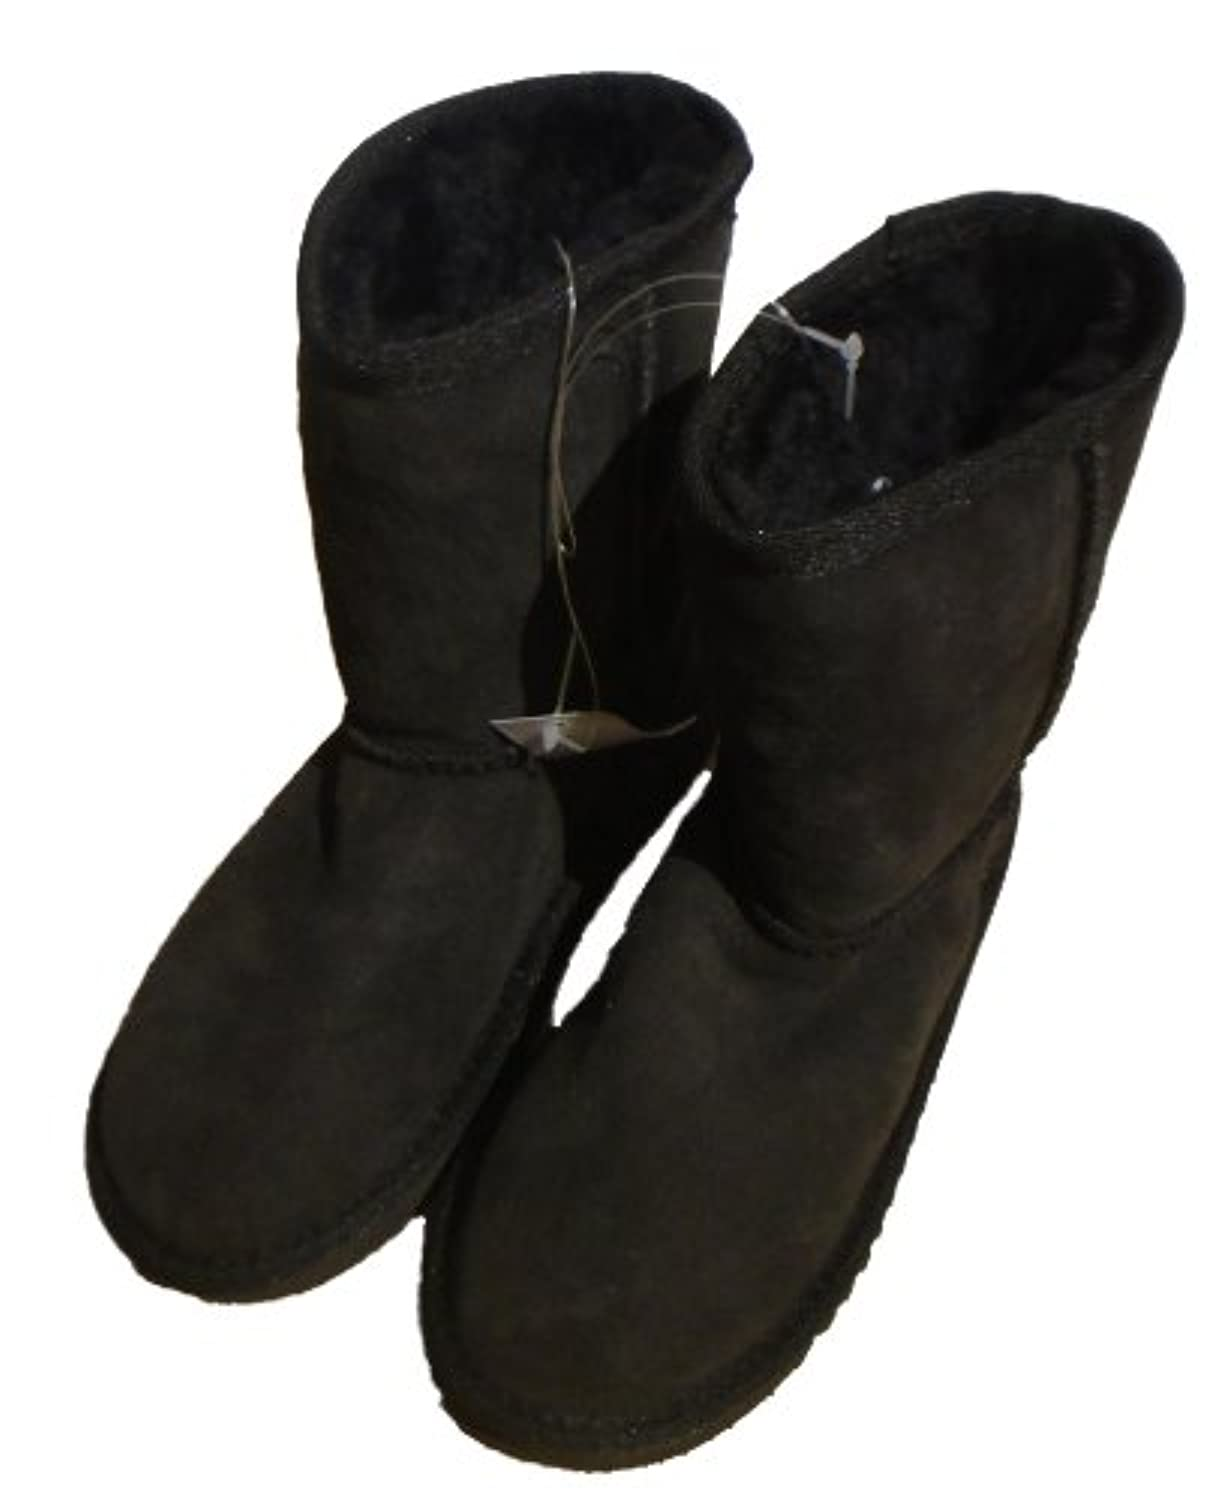 Kirkland Junior Kids Shearling Boots Chocolate Brown (Adult/Youth 1)